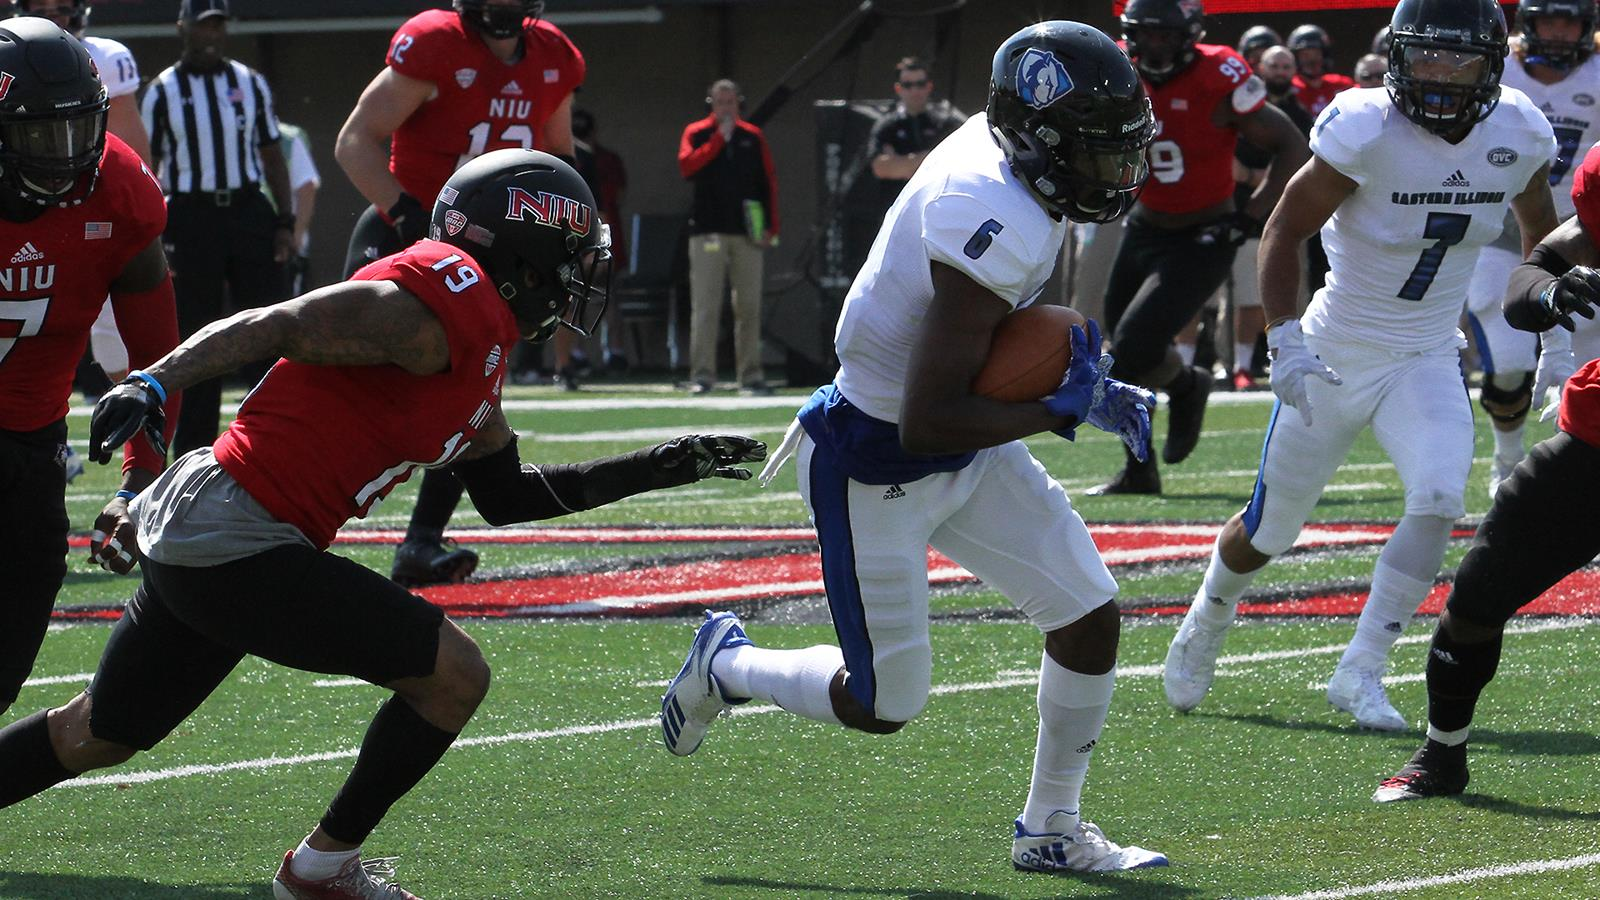 Dennis Turner Football Eastern Illinois University Athletics